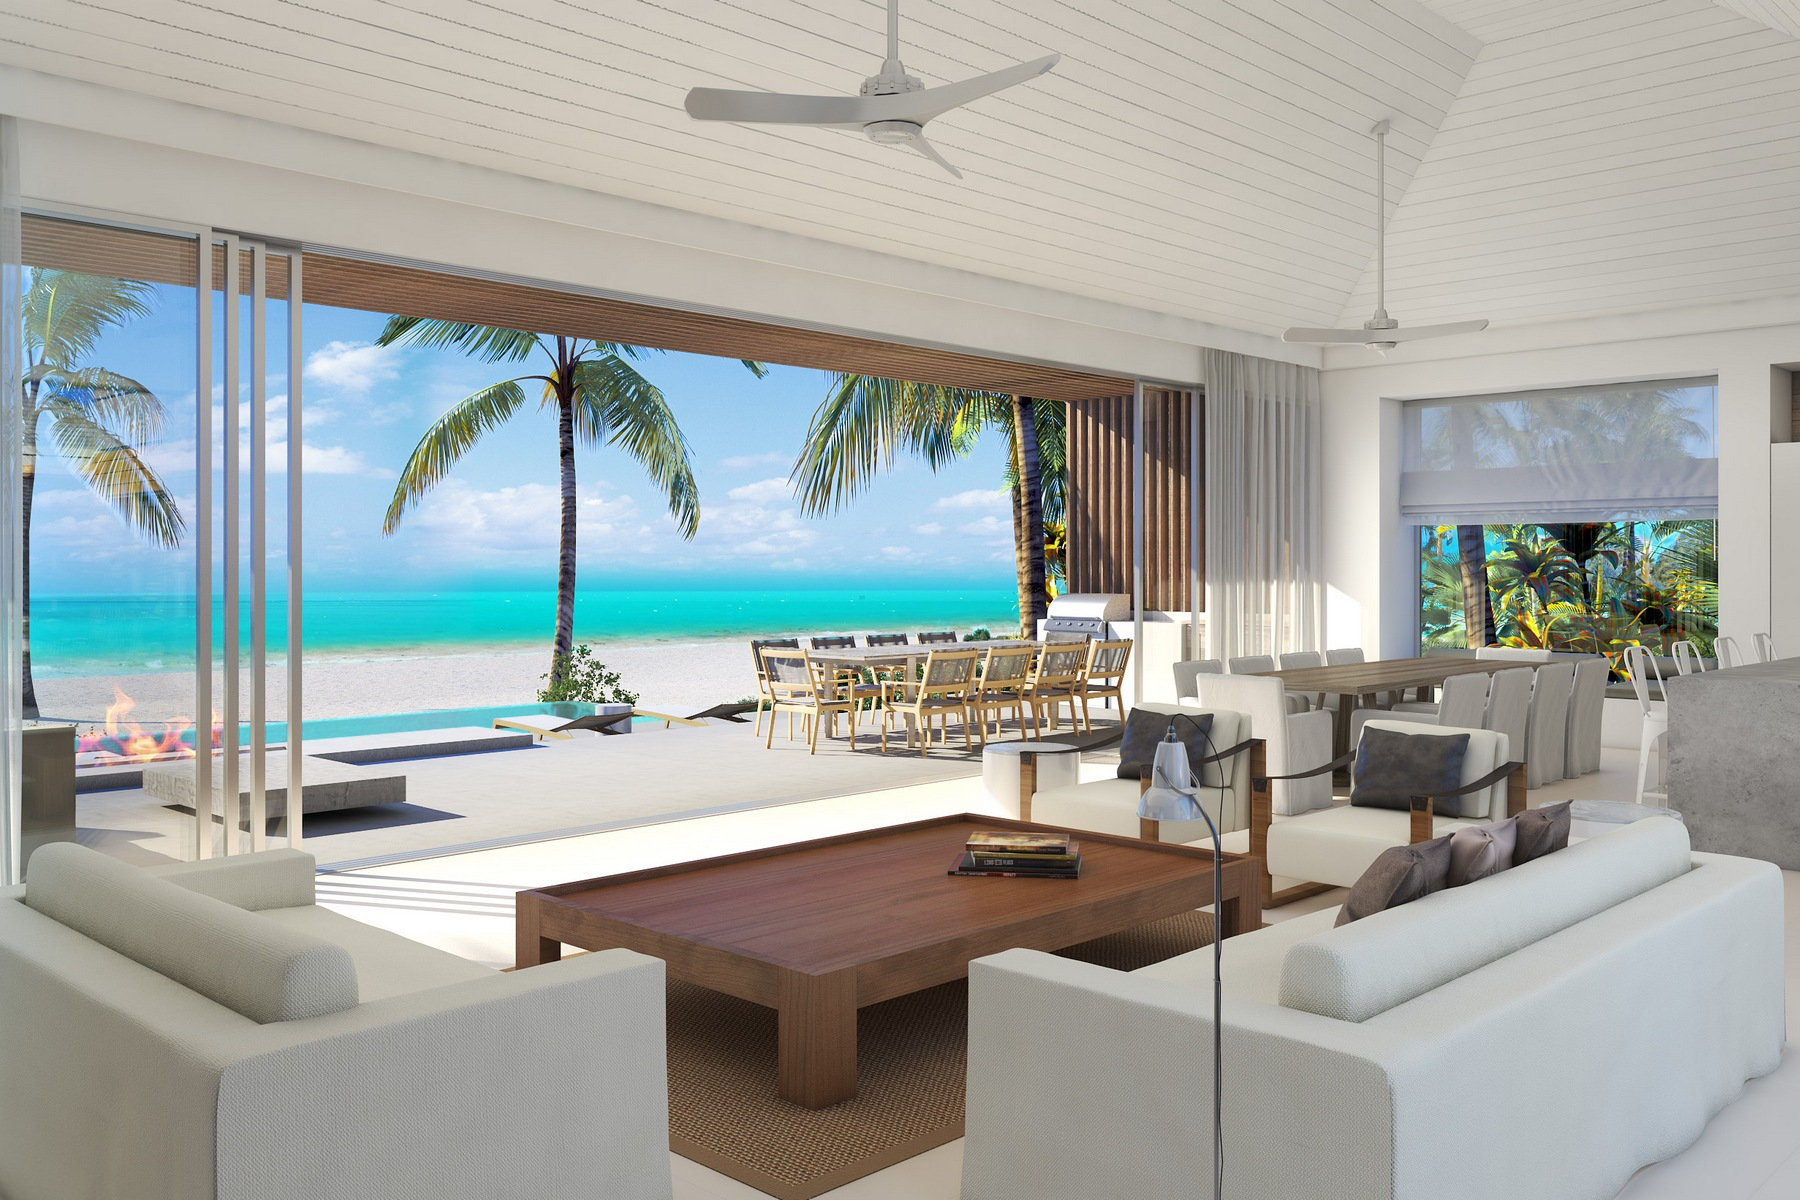 Additional photo for property listing at BEACH ENCLAVE LONG BAY - Design One 4B Beachfront Long Bay, Providenciales TCI Islas Turcas Y Caicos